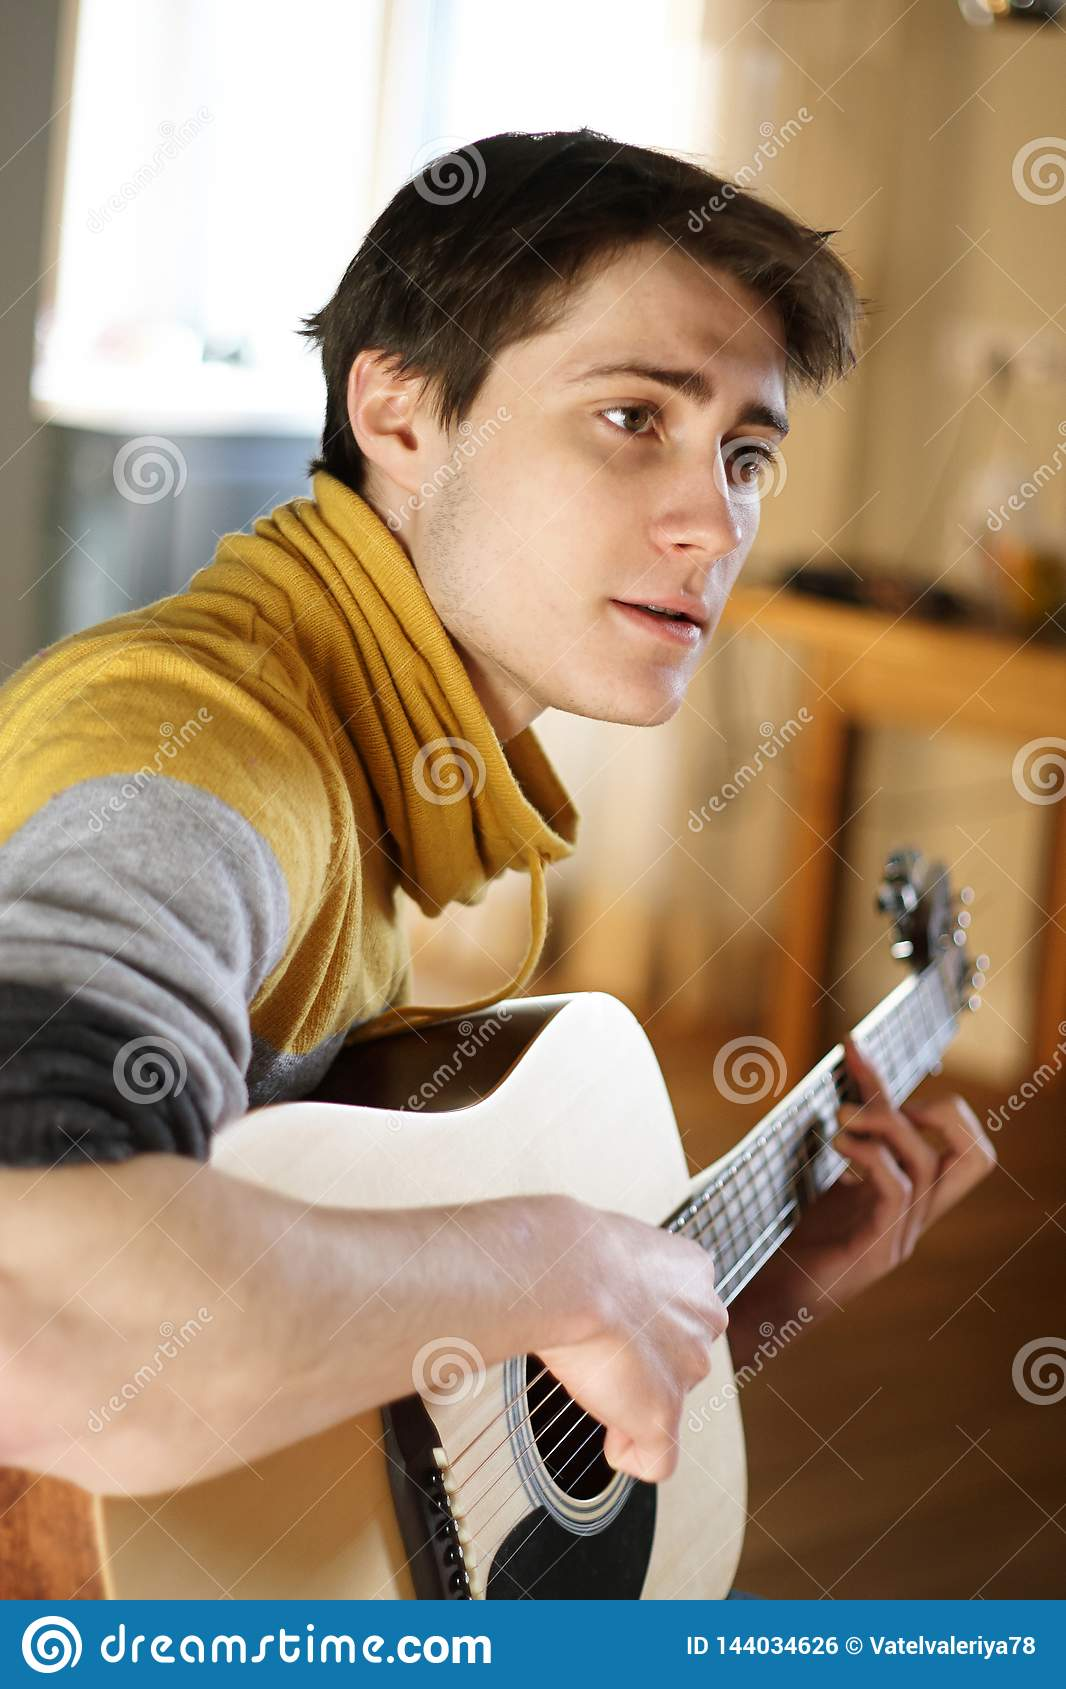 A guy in a yellow sweater sings a song, playing at his guitar